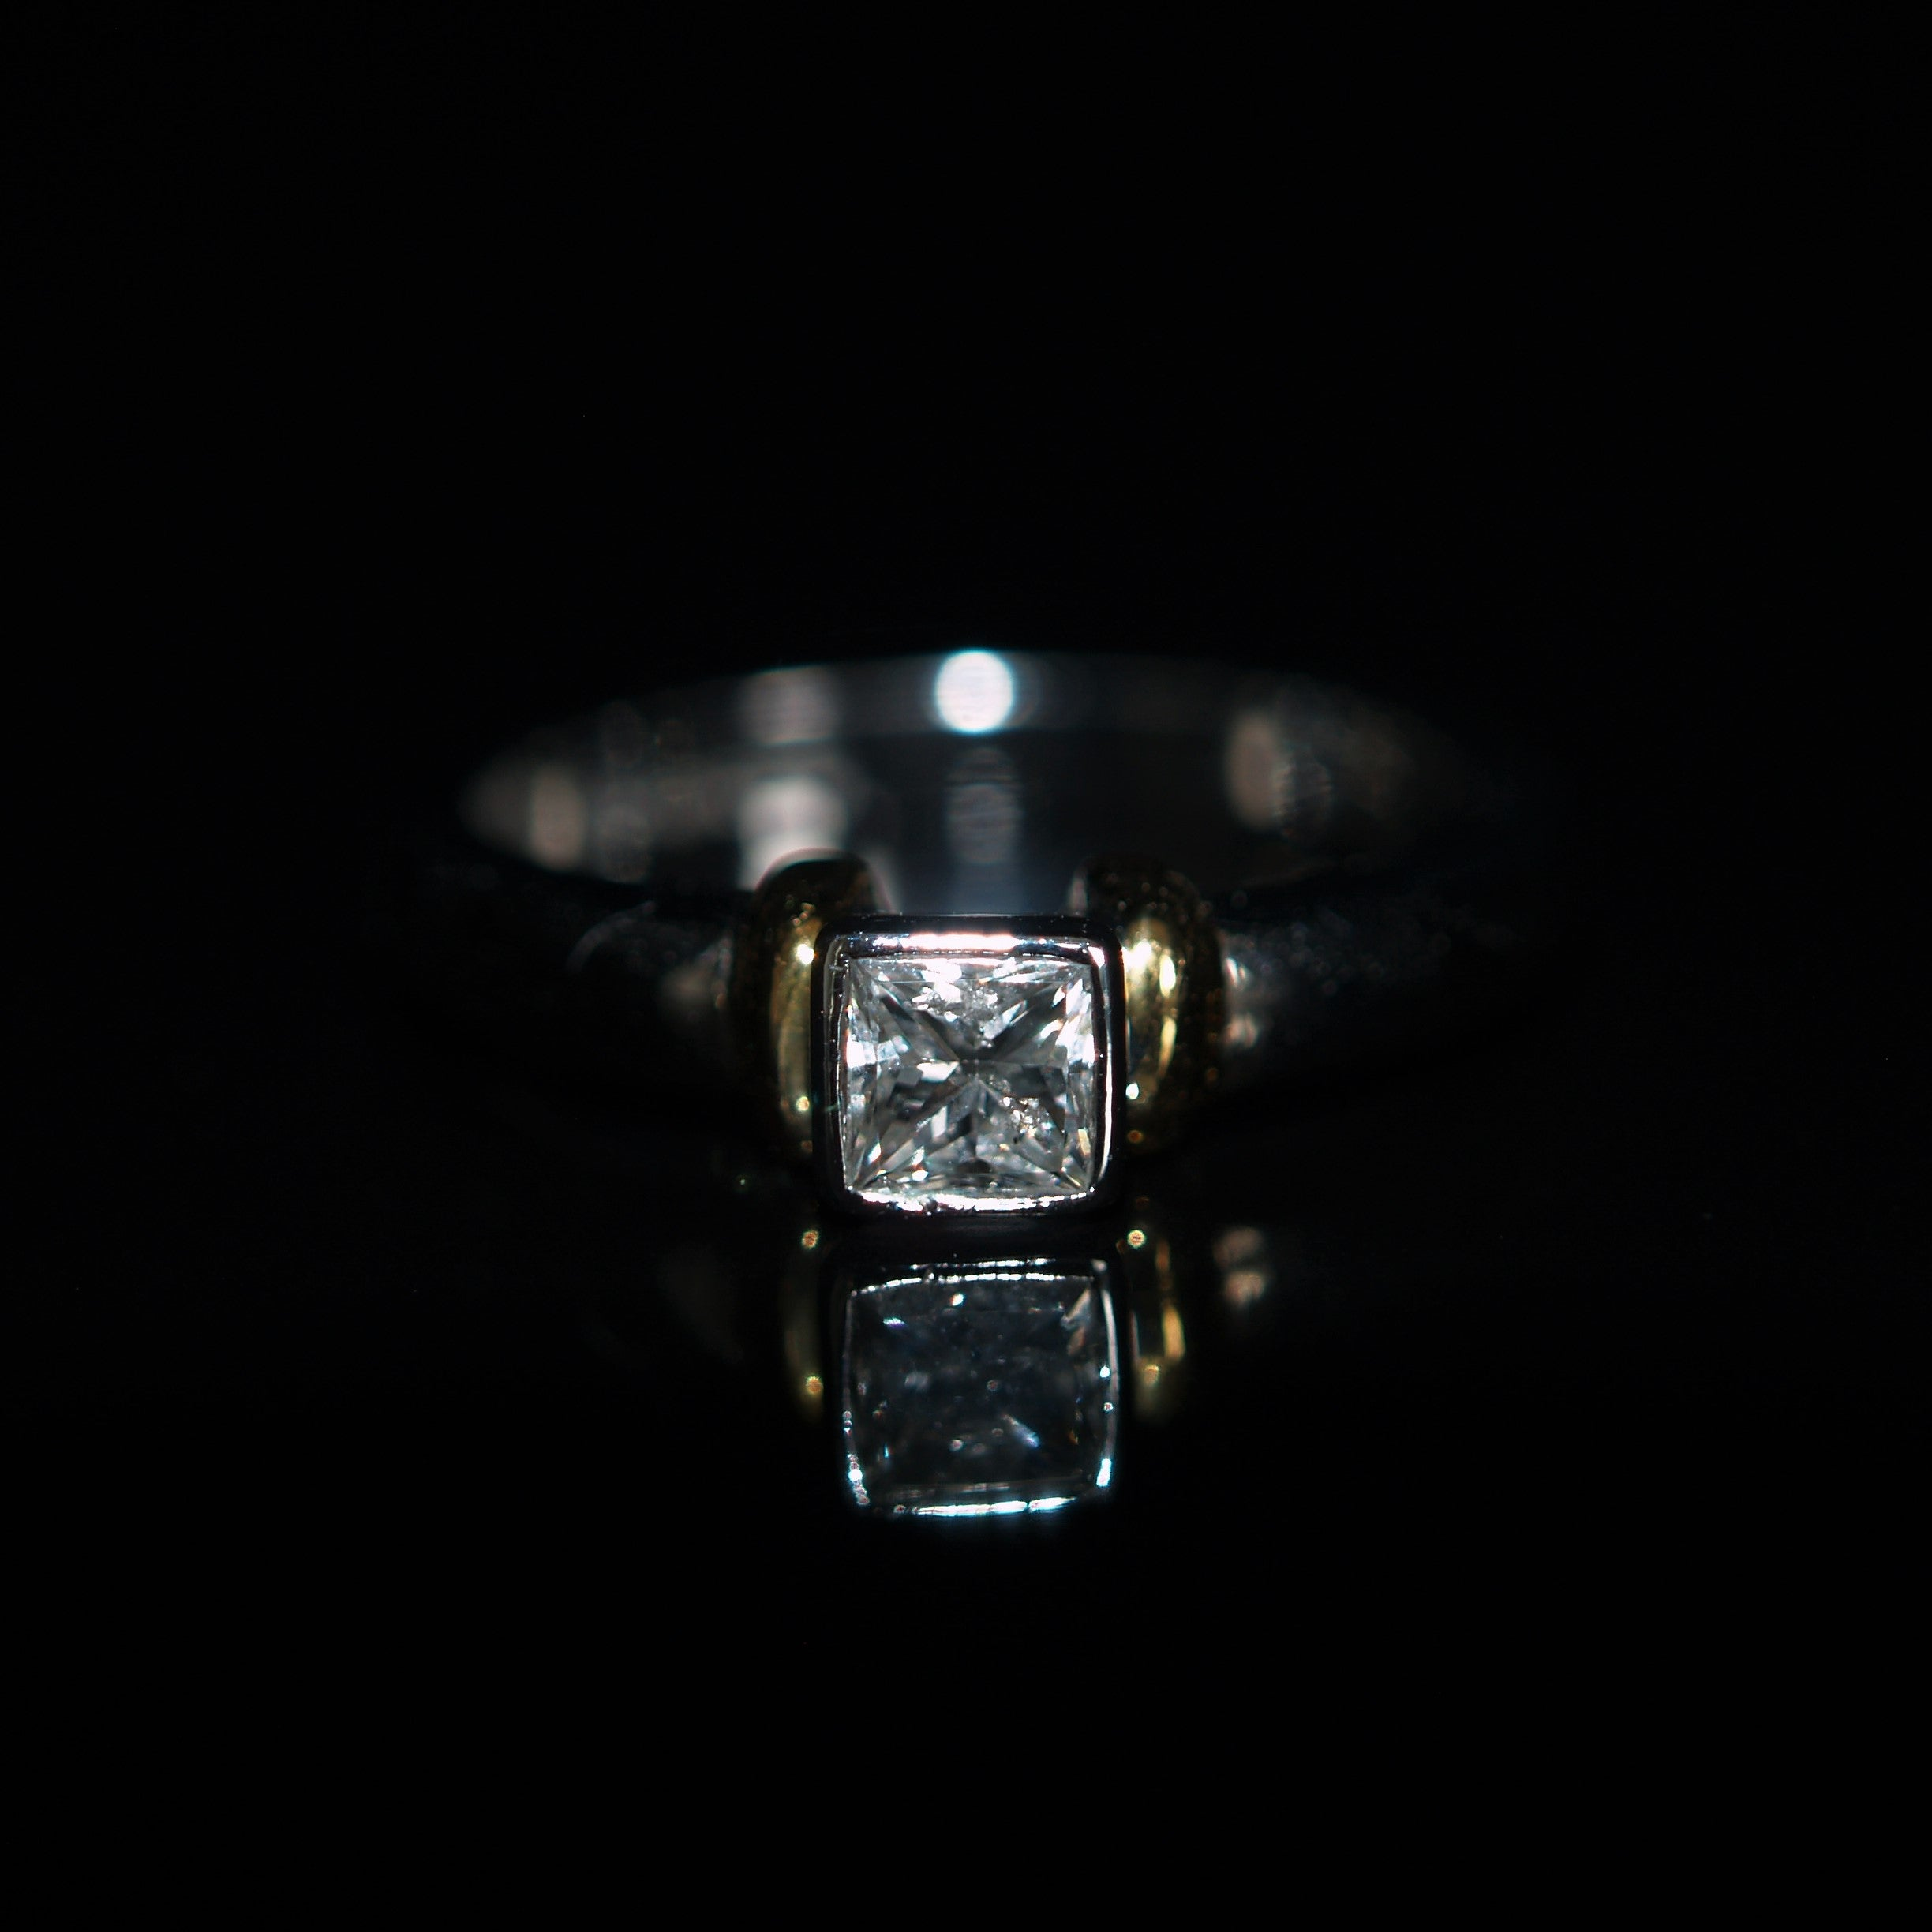 18ct White/Yellow Gold Princess Cut Solitaire Diamond Ring.